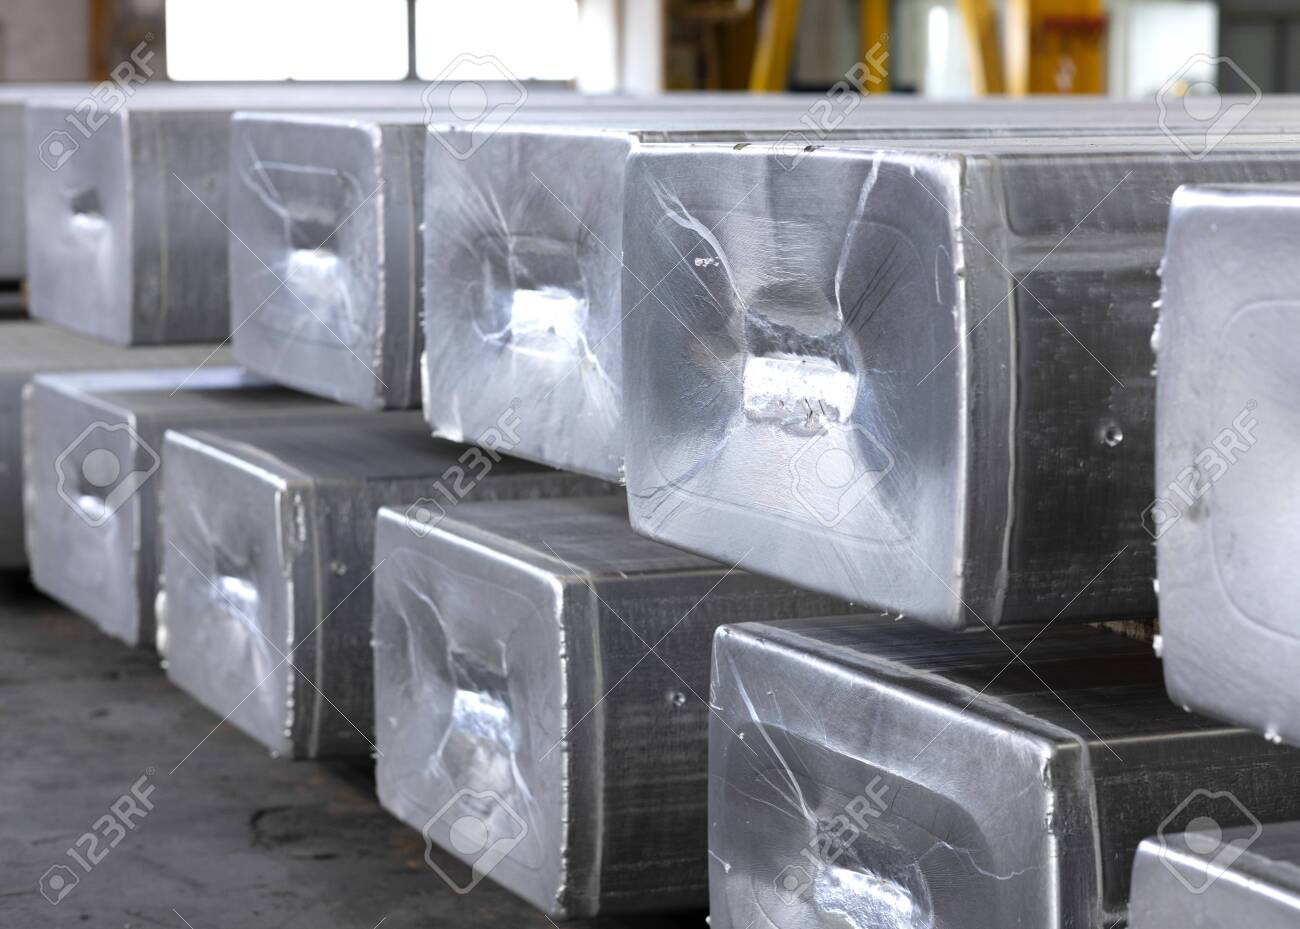 heavy aluminum ingots stacked in a warehouse foundry, raw material to be processed in a hot mill - 123523542